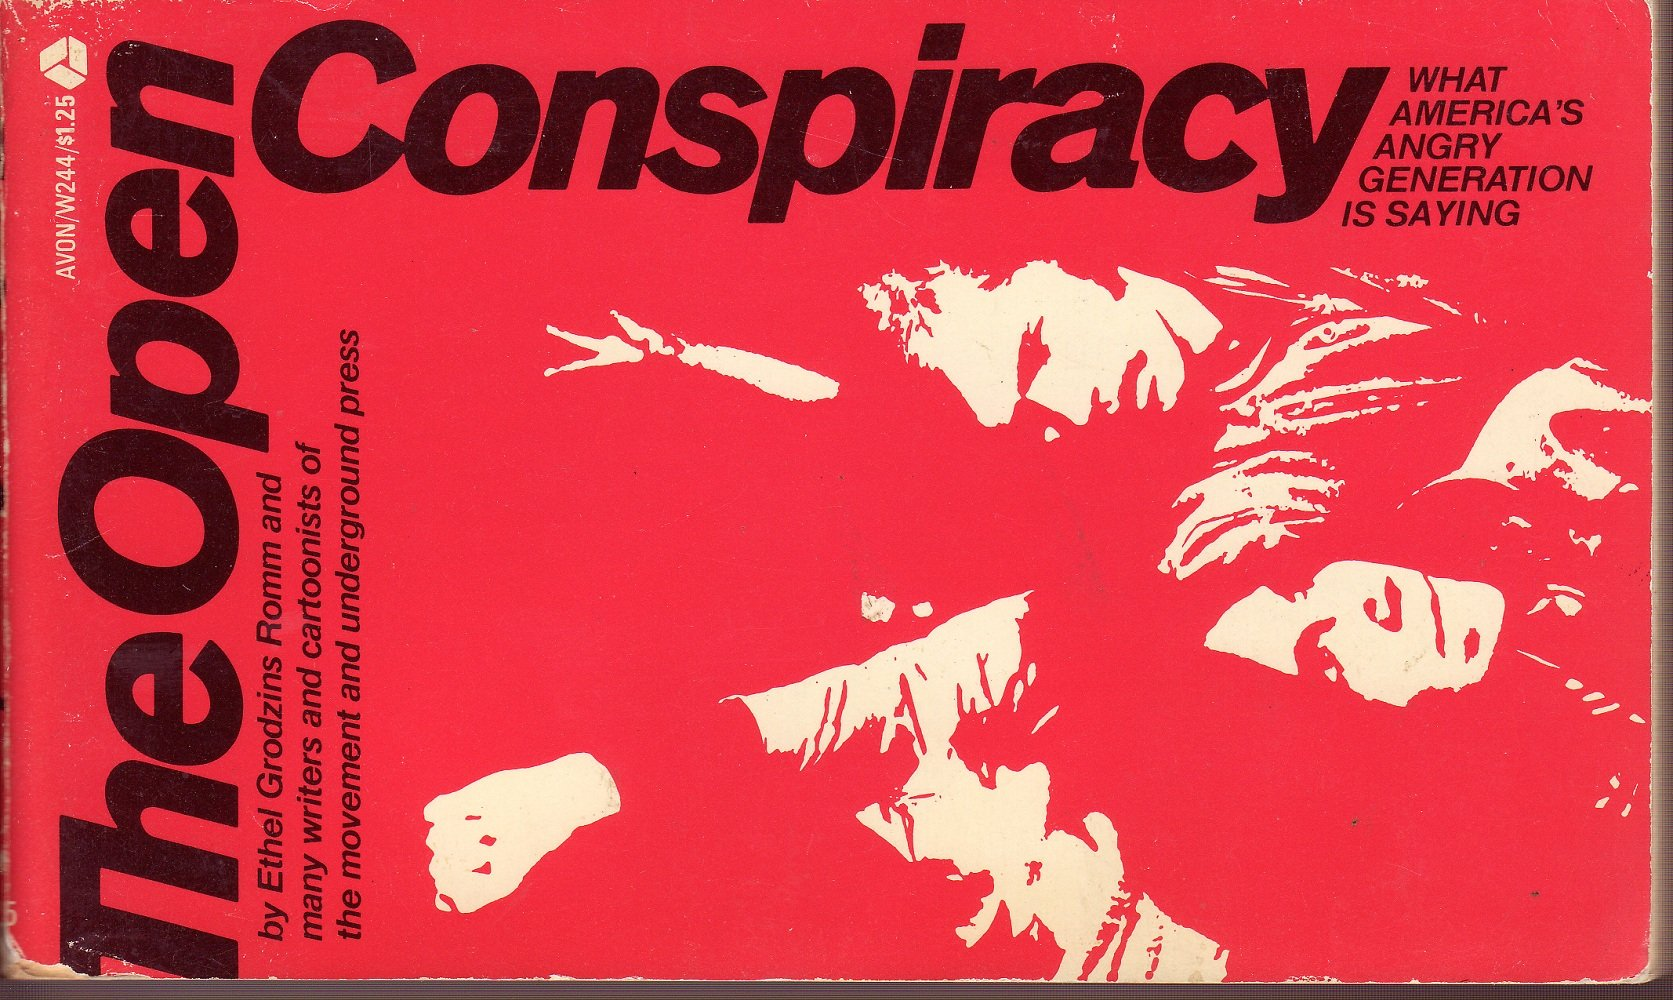 The open conspiracy: What America's angry generation is saying,, Romm, Ethel Grodzins